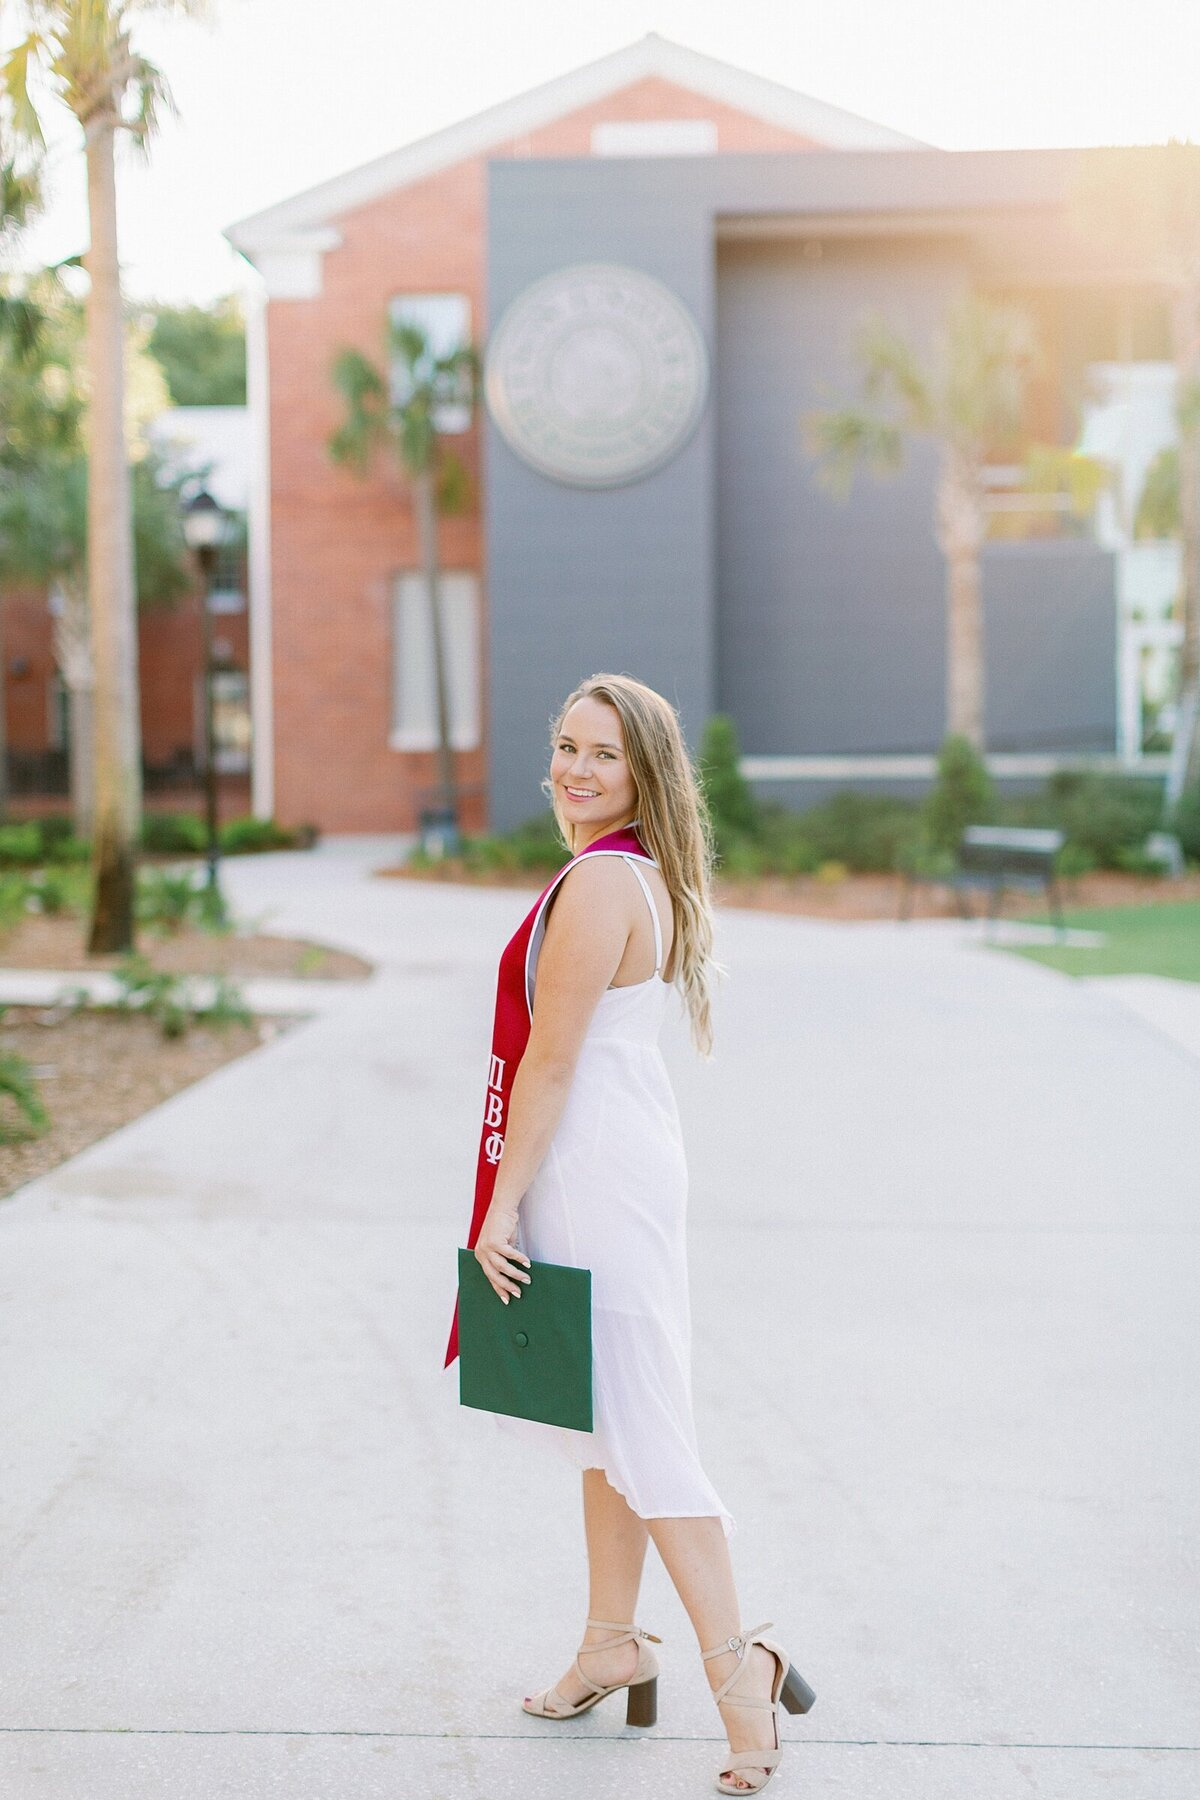 IPhillips Stetson College DeLand Florida Senior Portraits Photographer Casie Marie Photography-86